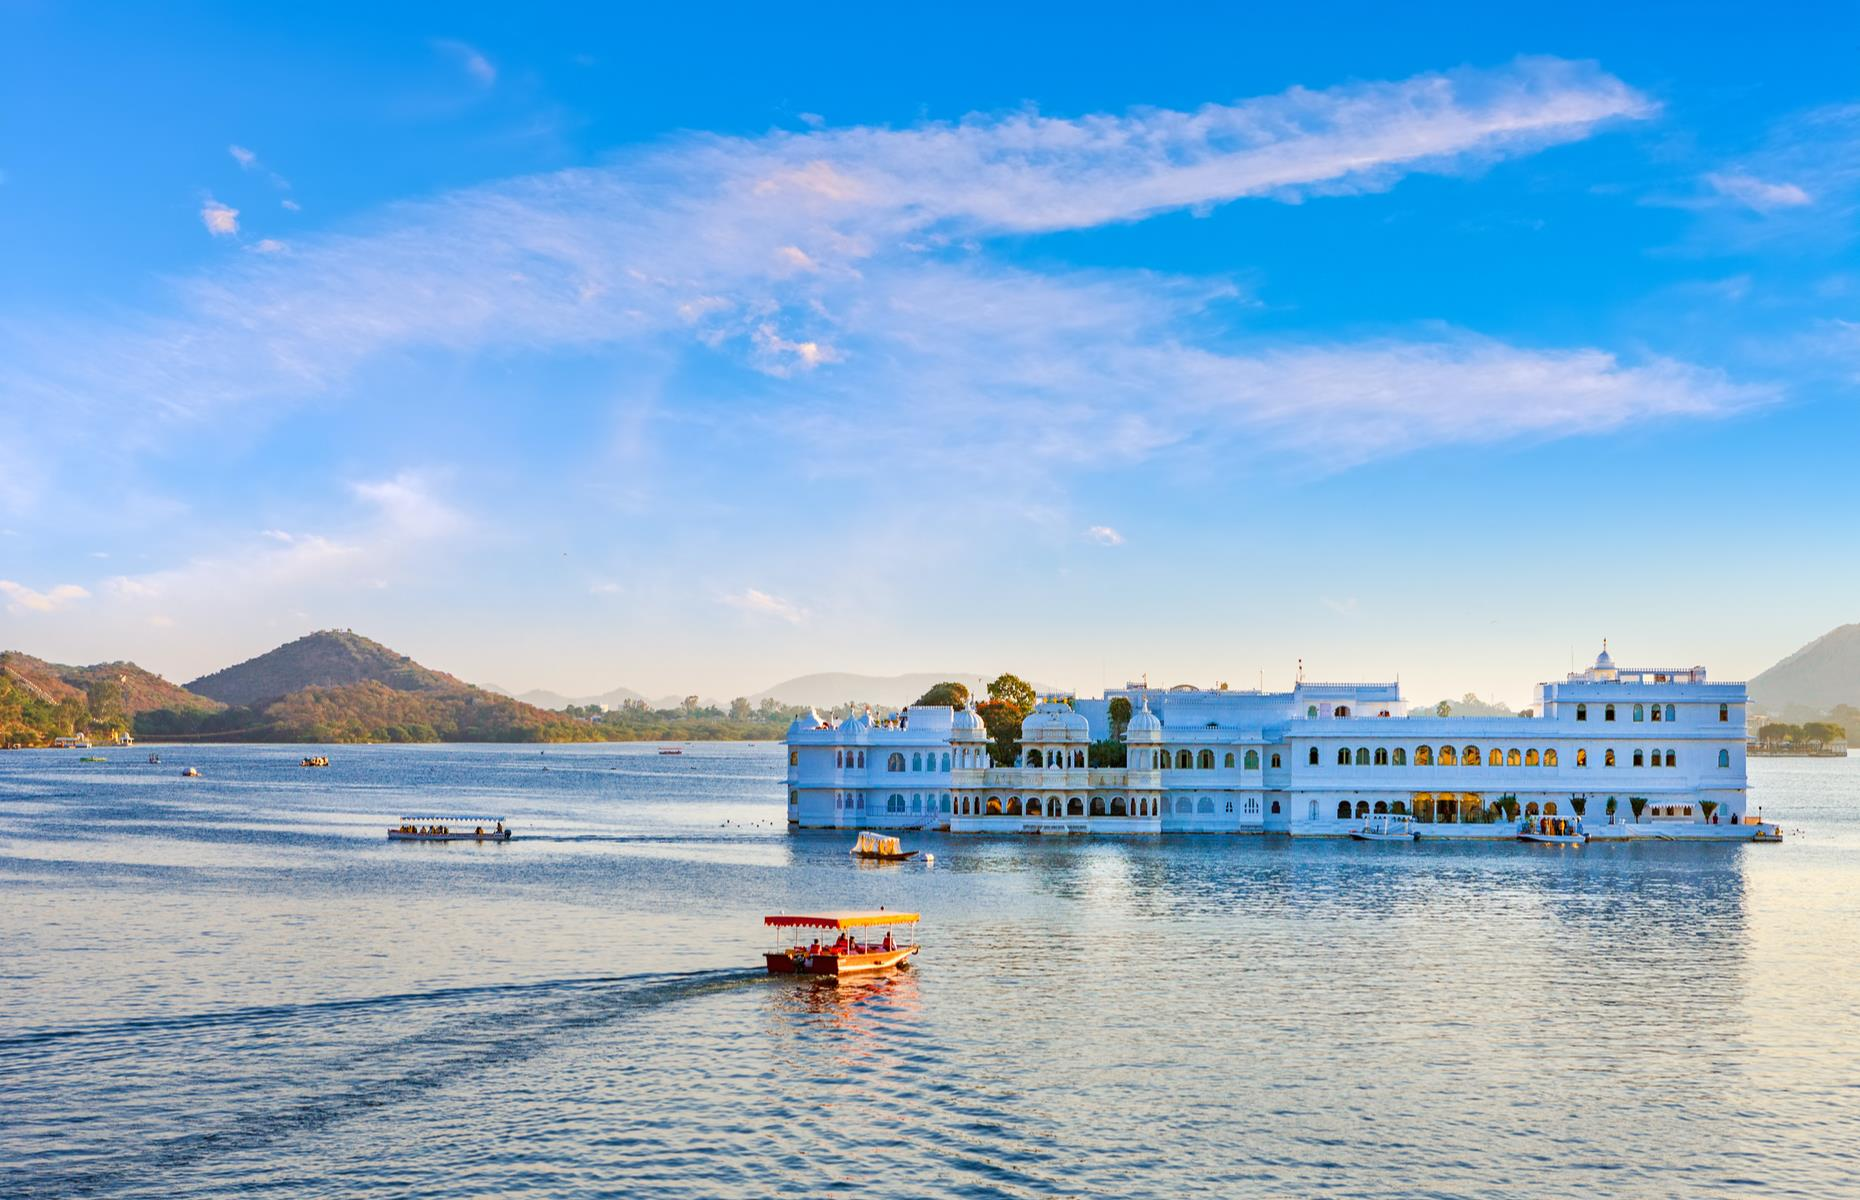 Slide 25 of 31: Dreamy Lake Pichola sits alongside the city of Udaipur in Rajasthan. It was created in 1362 so merchants could transport grain and was later enlarged by Maharana Udai Singh, who built his royal palaces and temples on the water's edge. The luxurious Taj Lake Palace (pictured), set on Jag Island in the heart of the lake, is the most famous sight. It was alsoone of the locations featured in the 1983 James Bond film Octopussy.